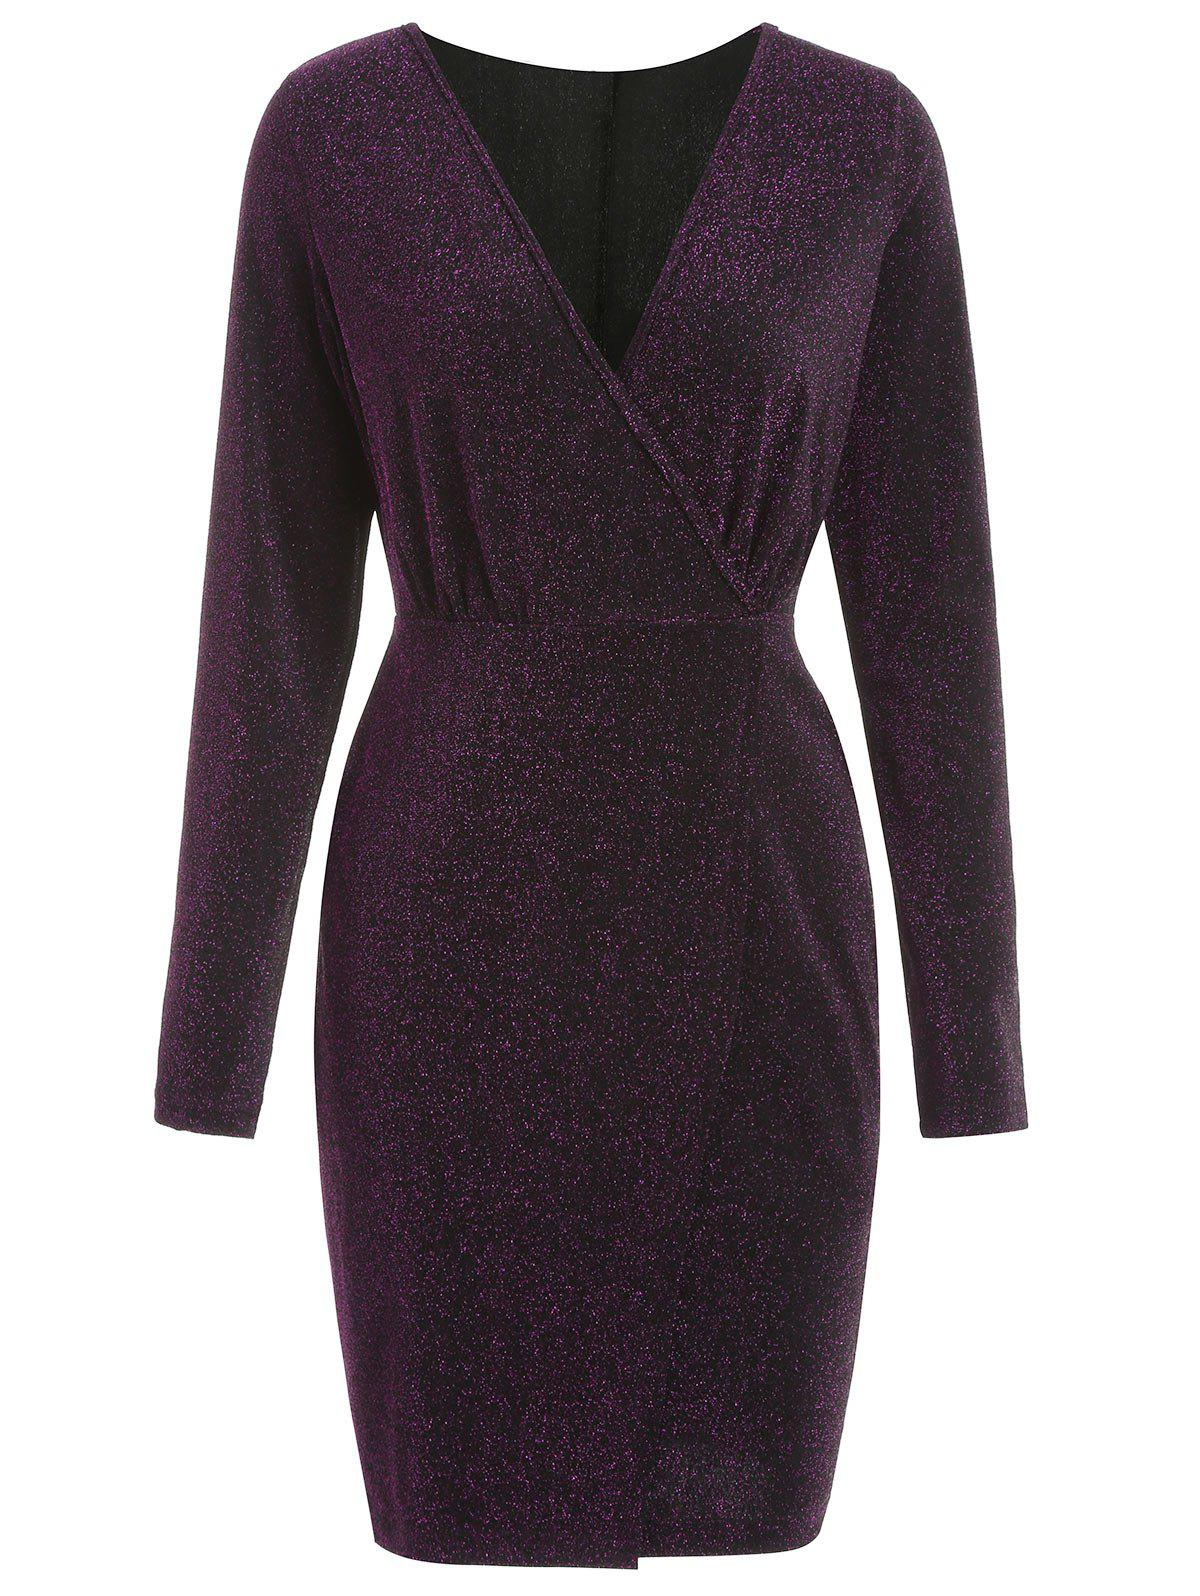 Latest Full Sleeve Glitter Surplice Dress